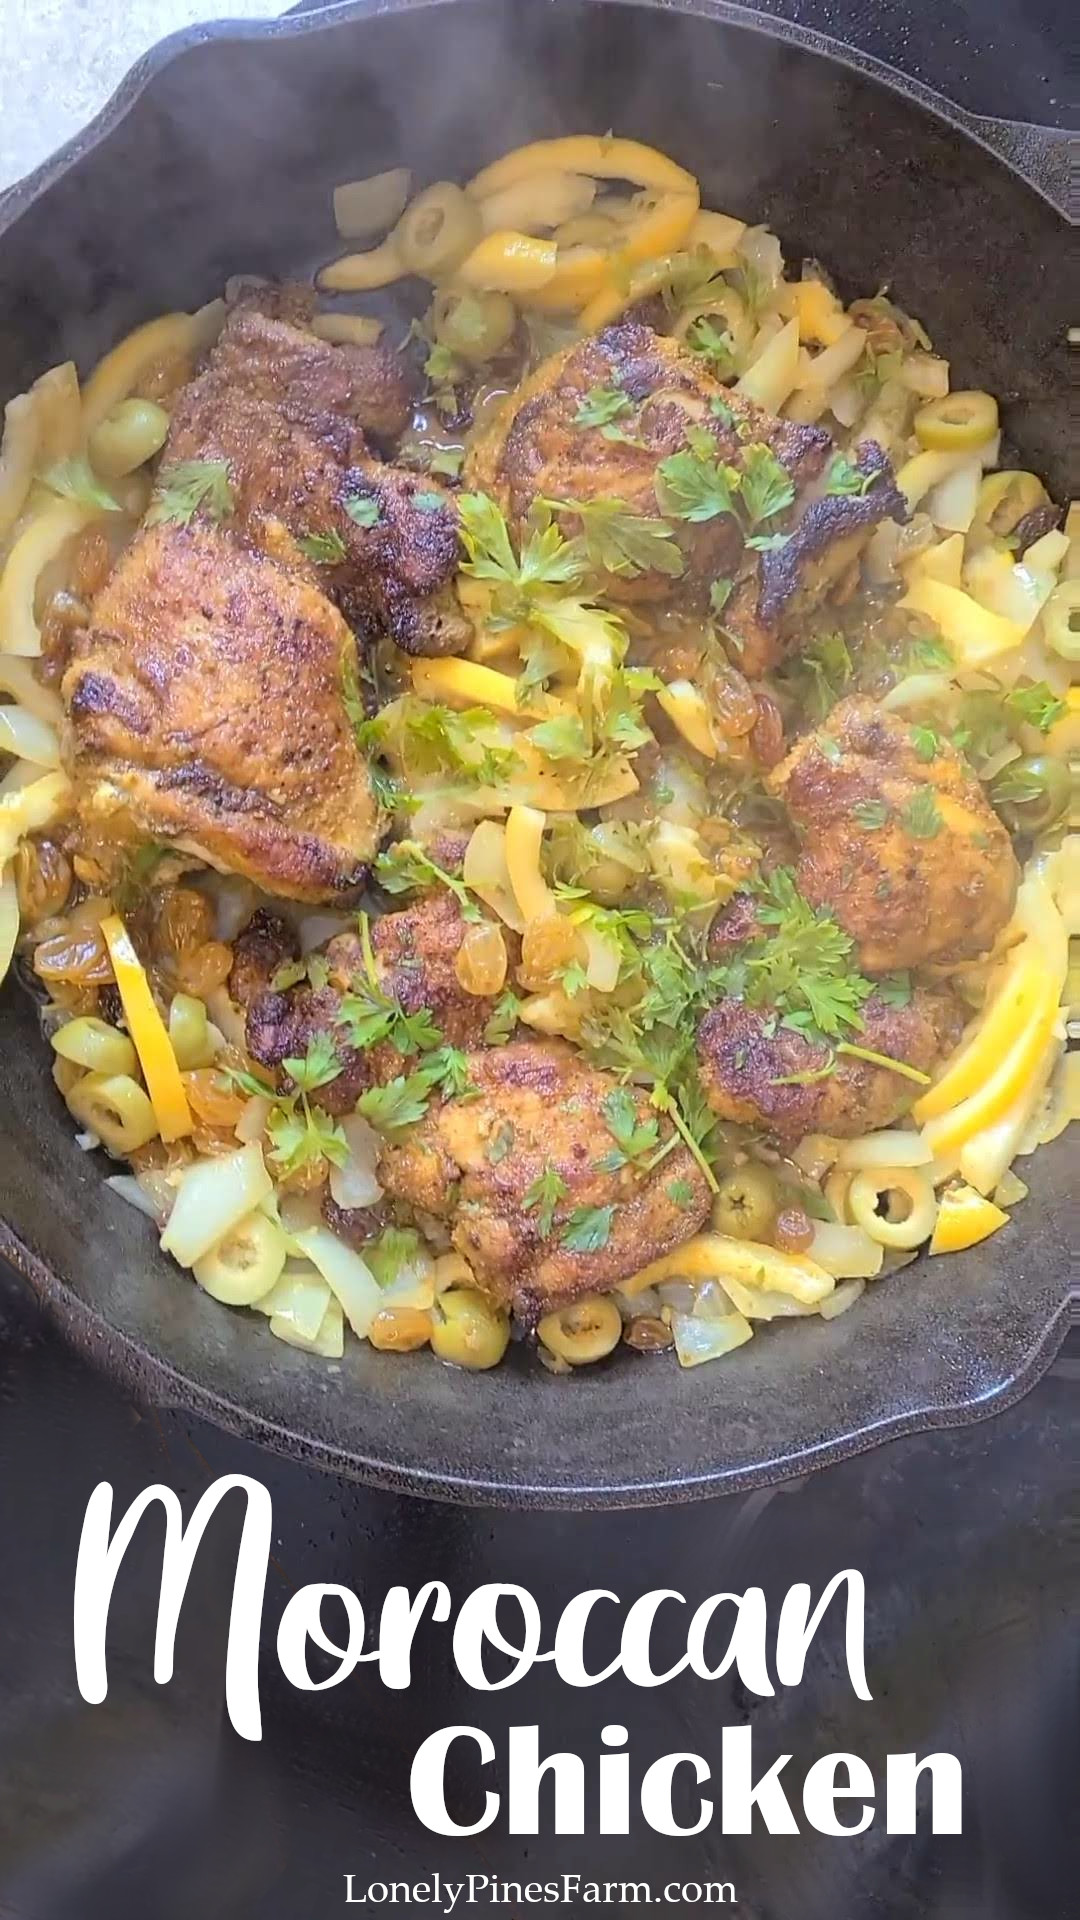 This chicken dish is so flavorful - the perfect introduction to Moroccan food! It features complex flavors, melding together to form an incredible meal. Even better, the ease of this one-pot dish makes it perfect for any night of the week!